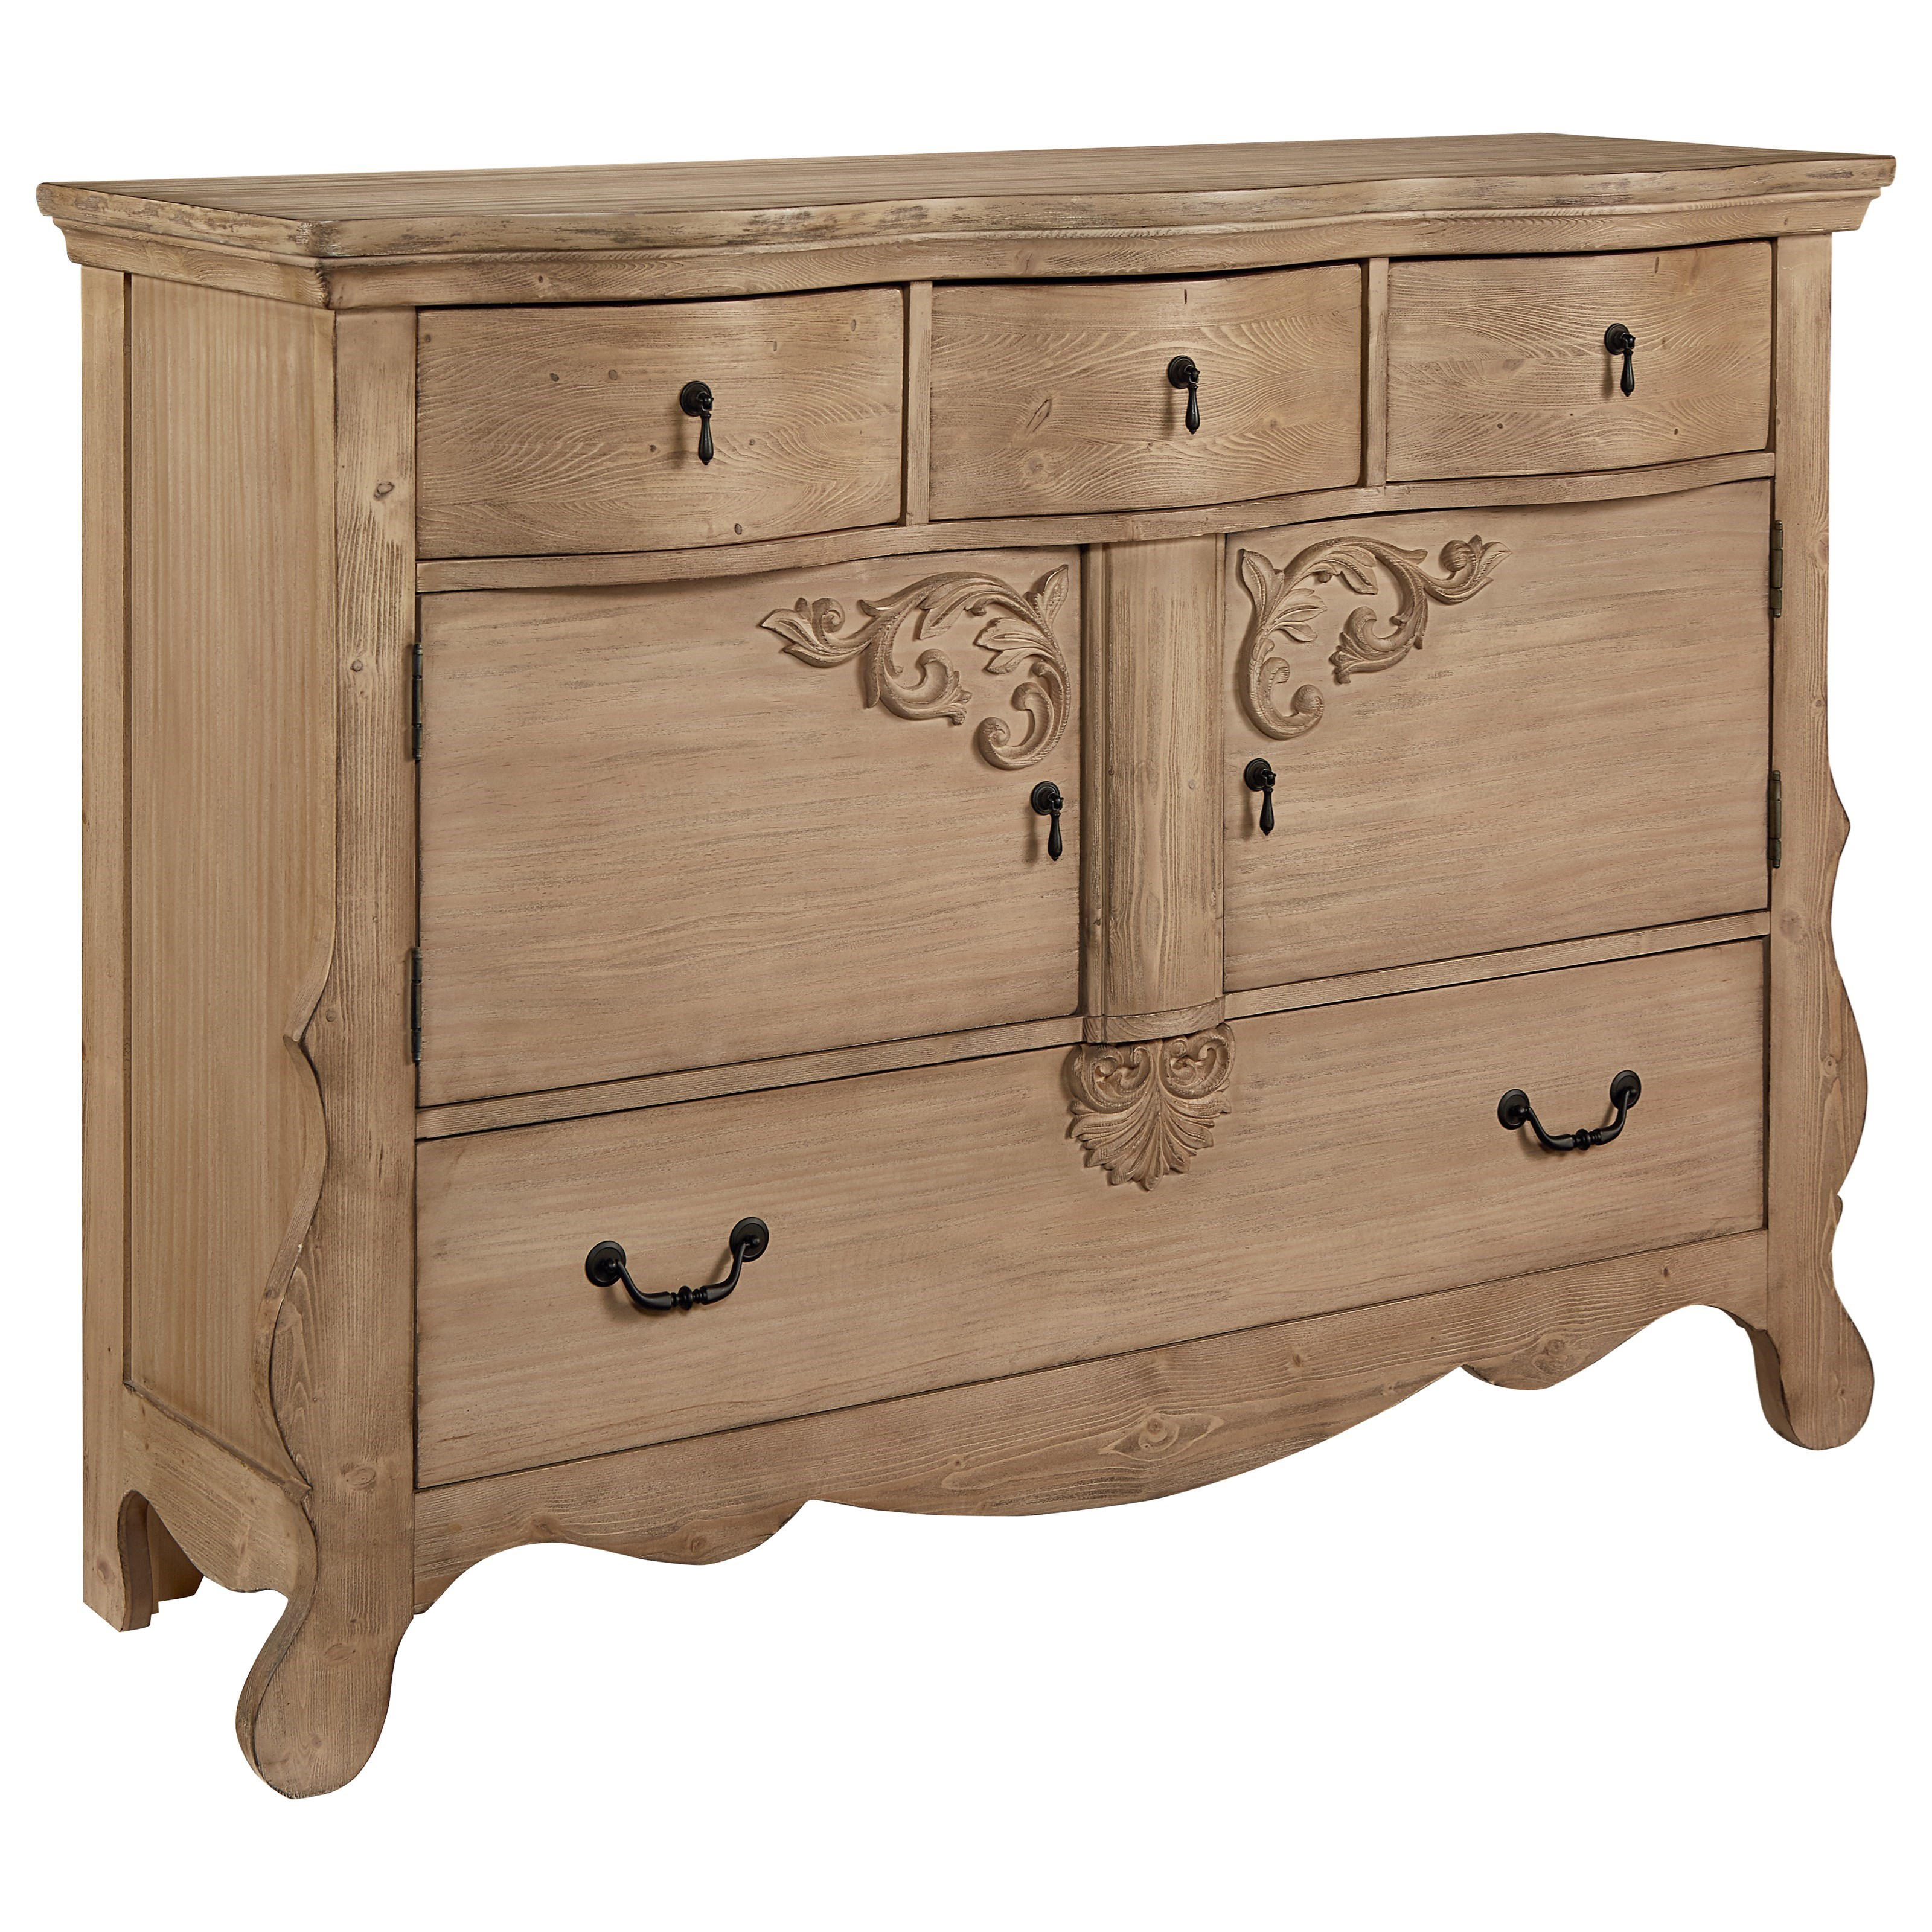 Magnolia Home by Joanna Gaines Traditional Sideboard - Item Number: 4010302Y